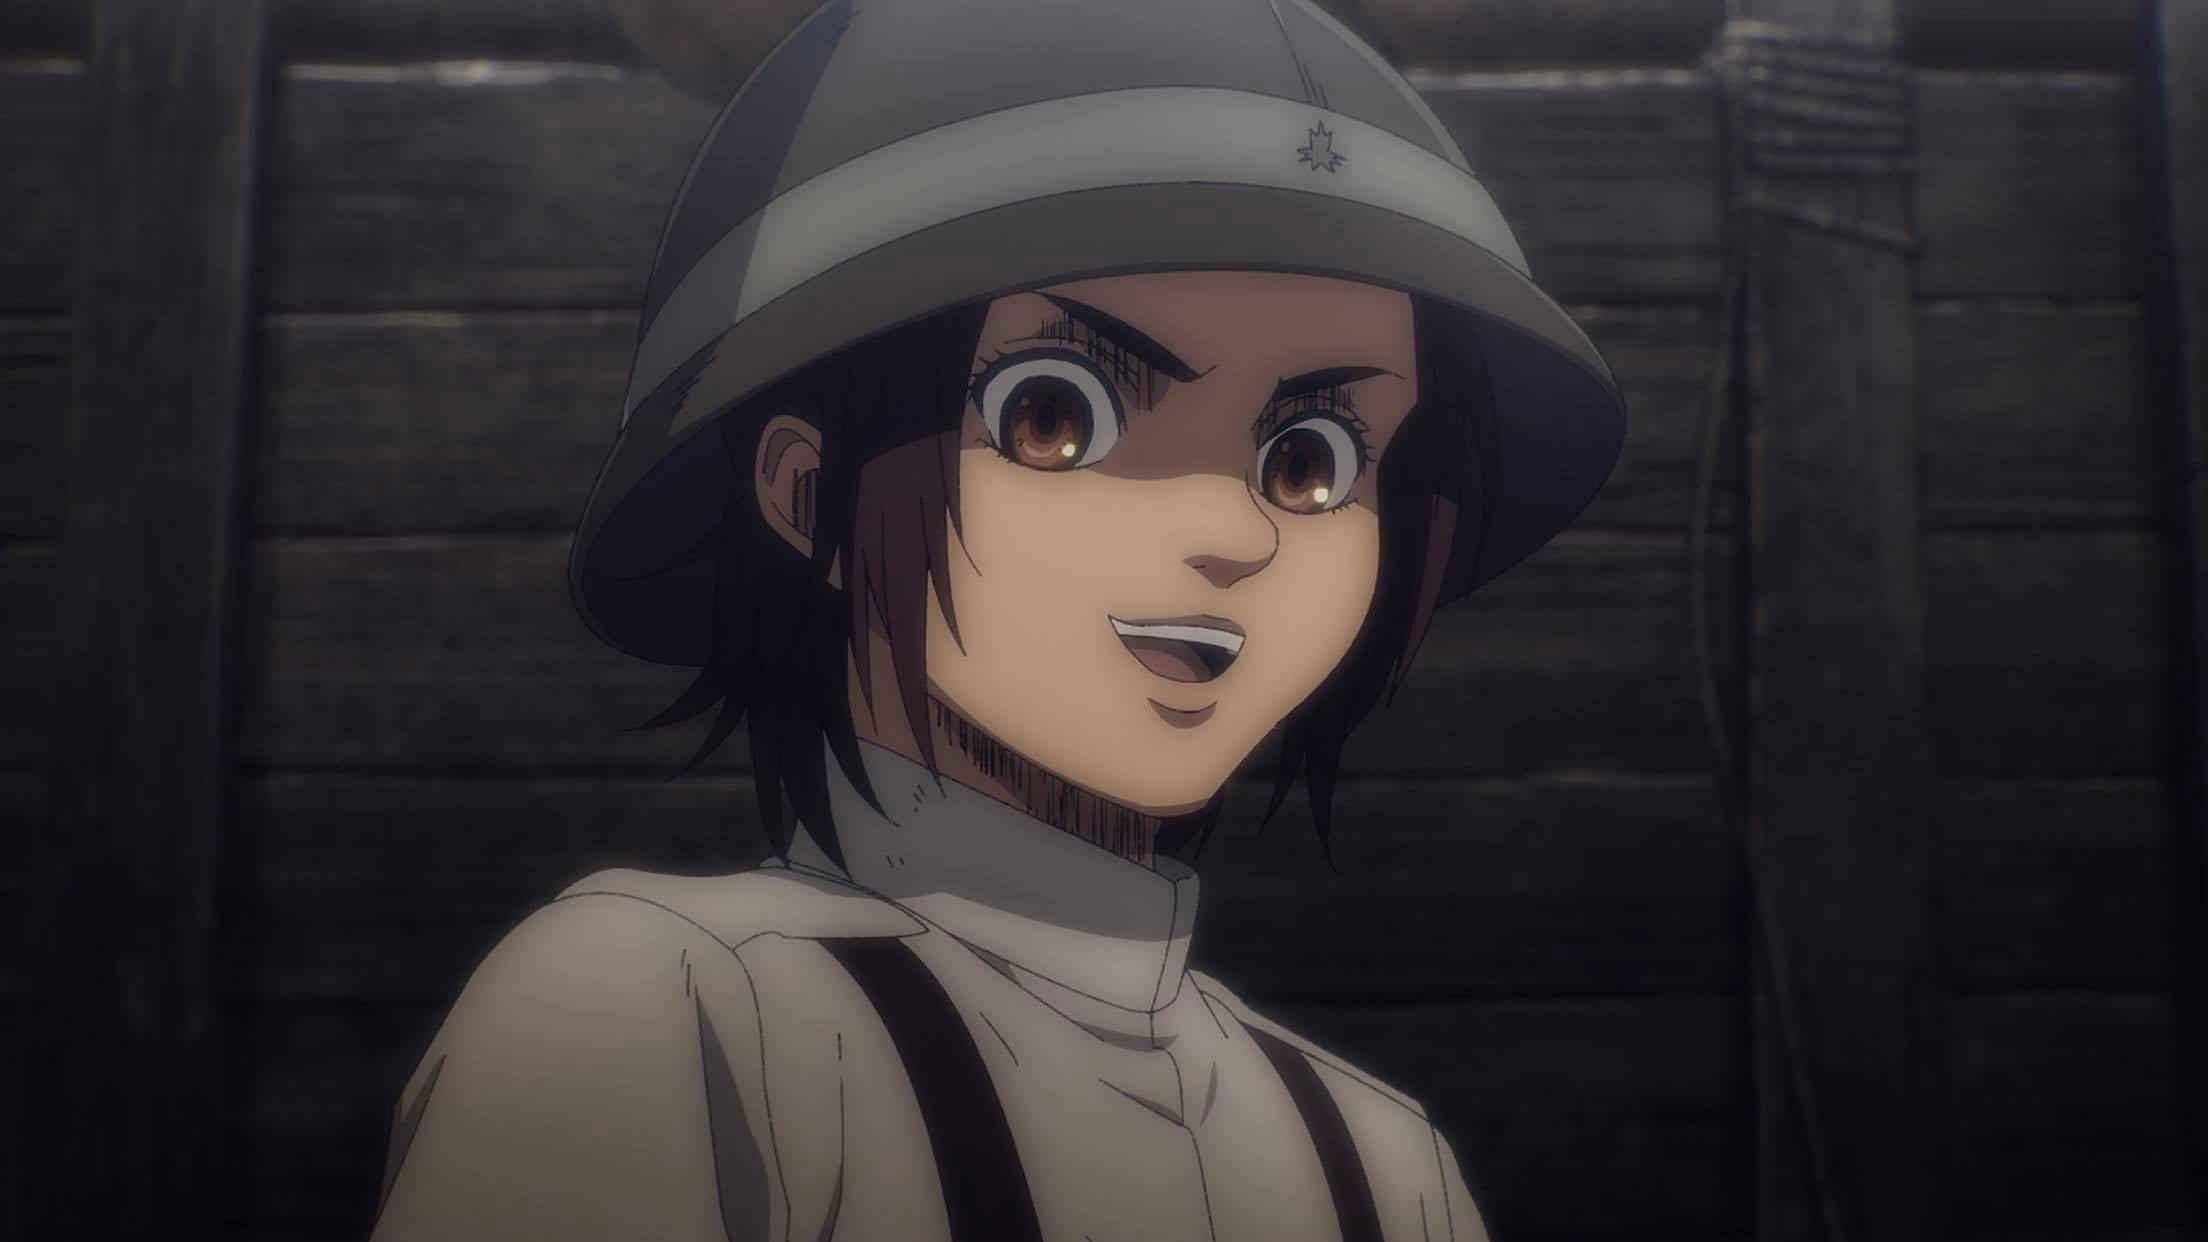 Attack on Titan Episode 67 Preview Trailer and Spoilers